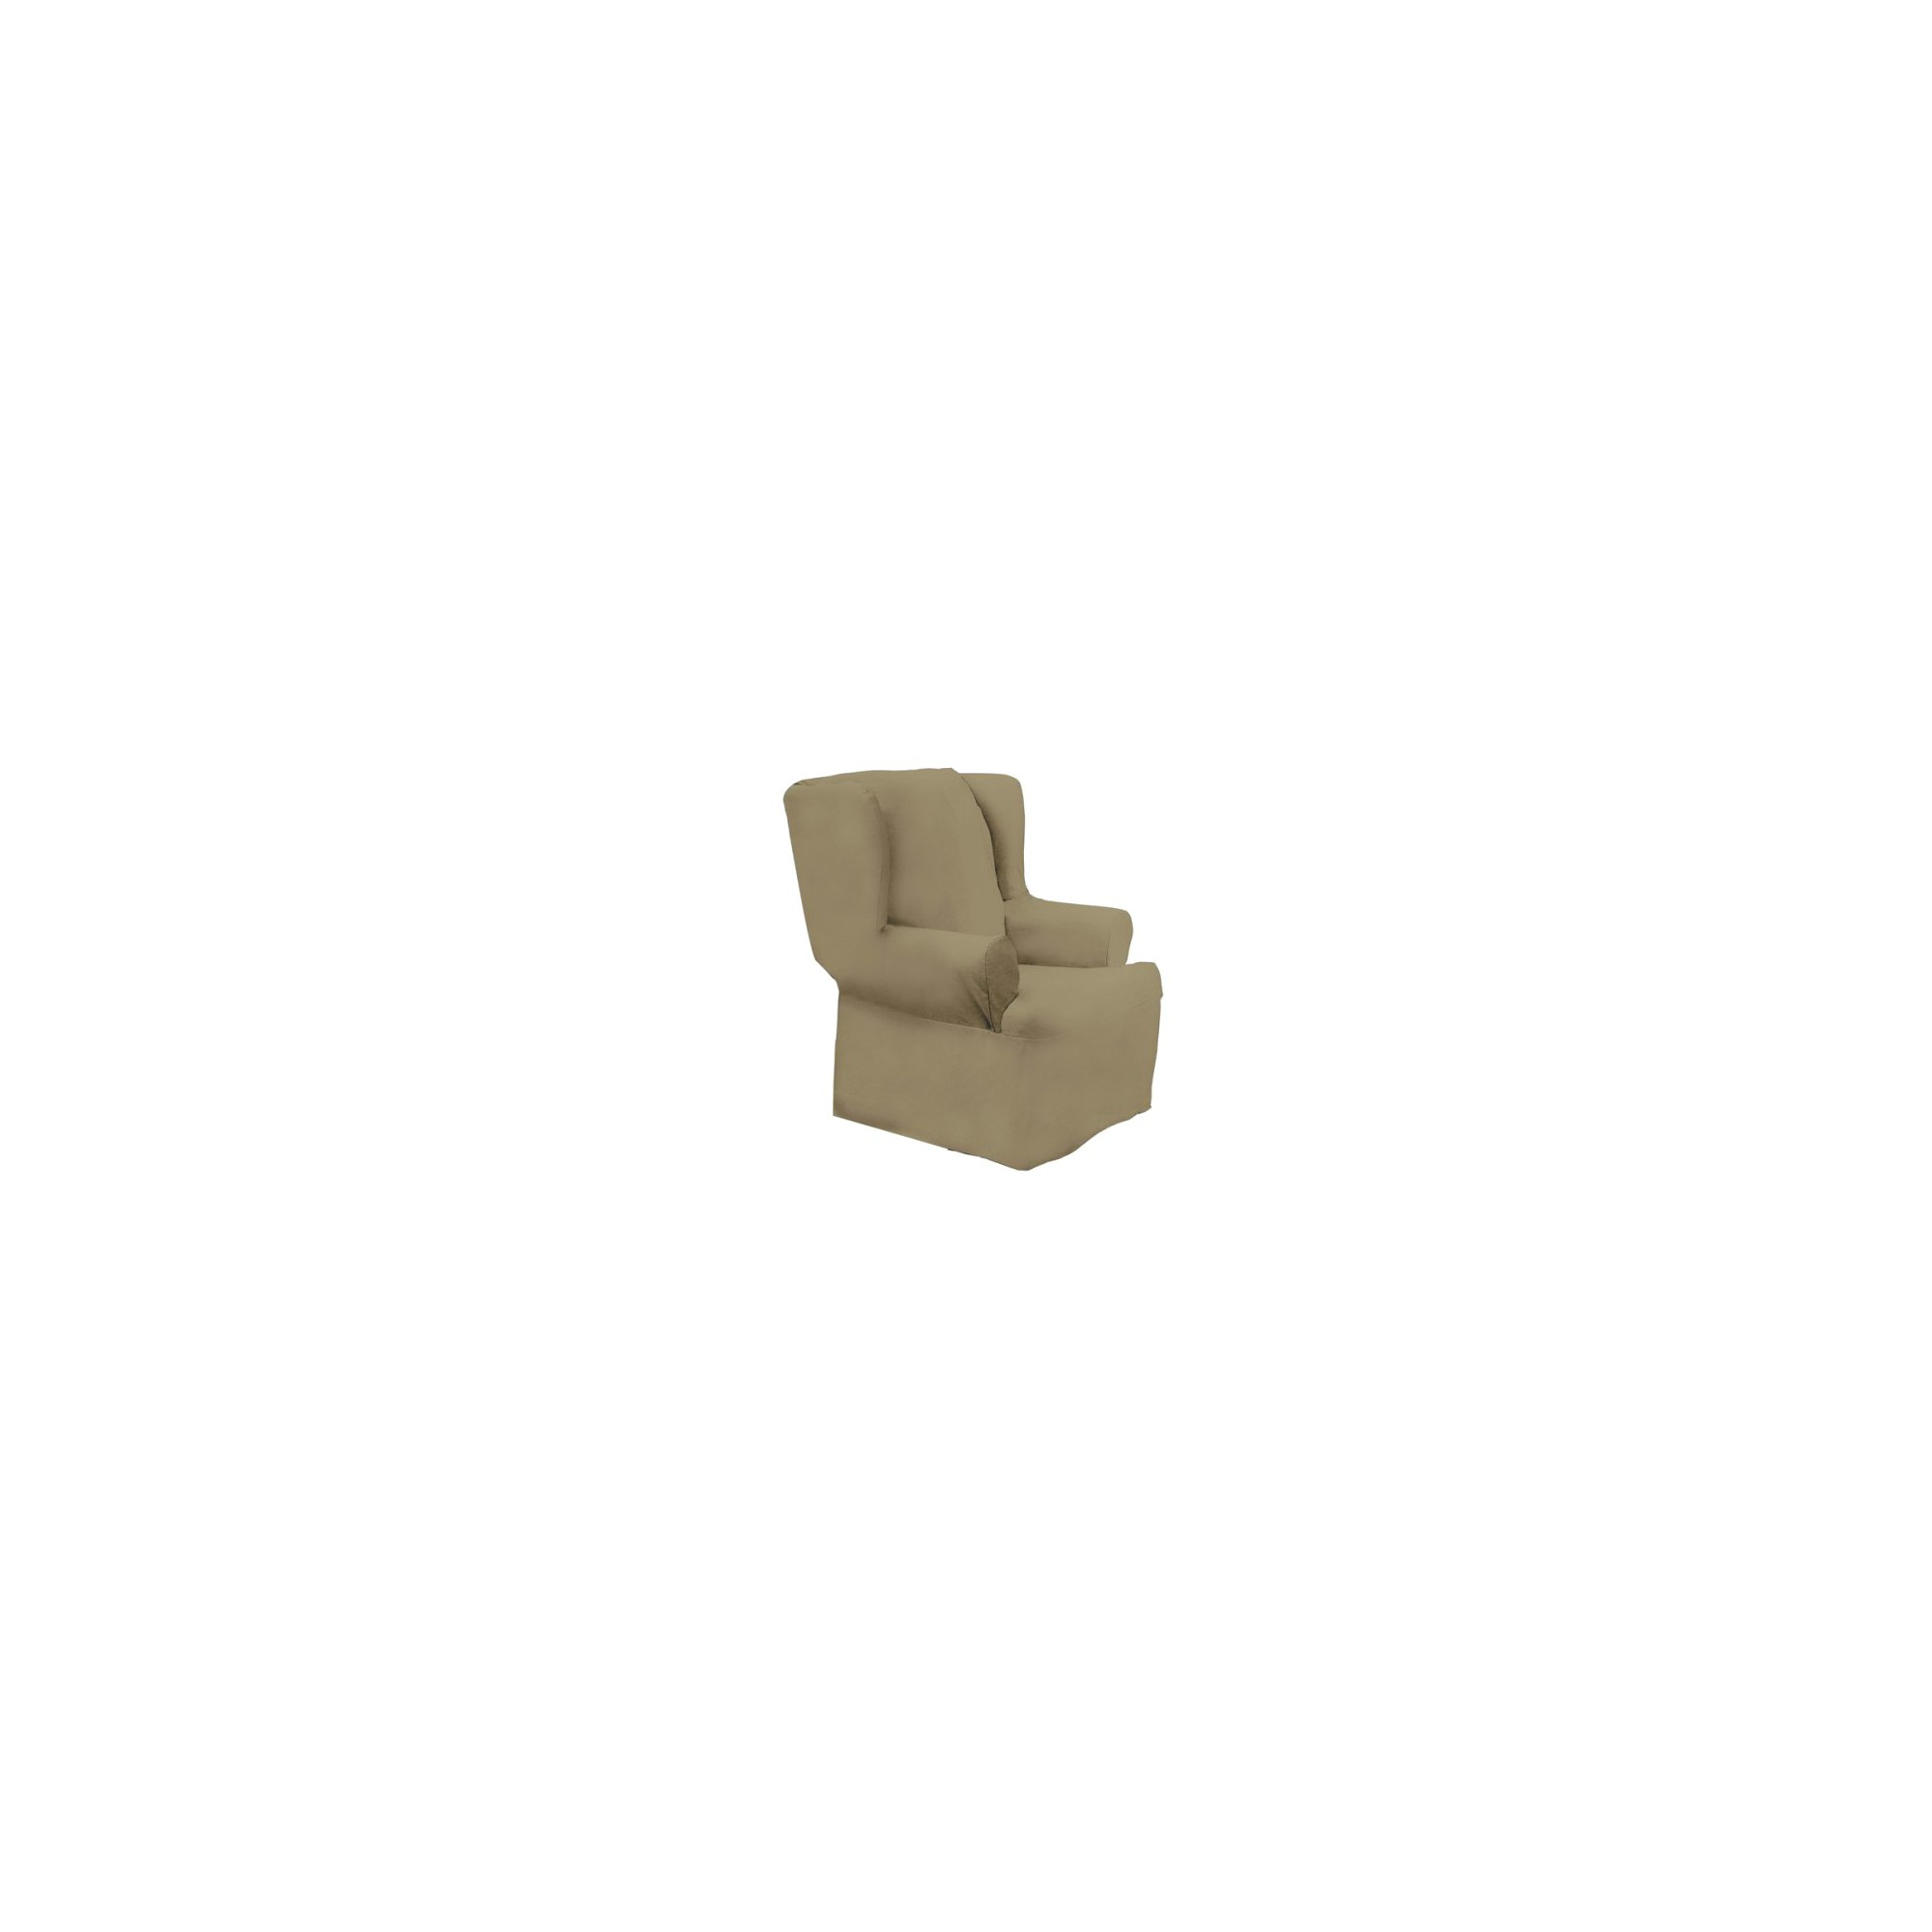 Cotton Duck Wing Chair Slipcover Linen - Sure Fit